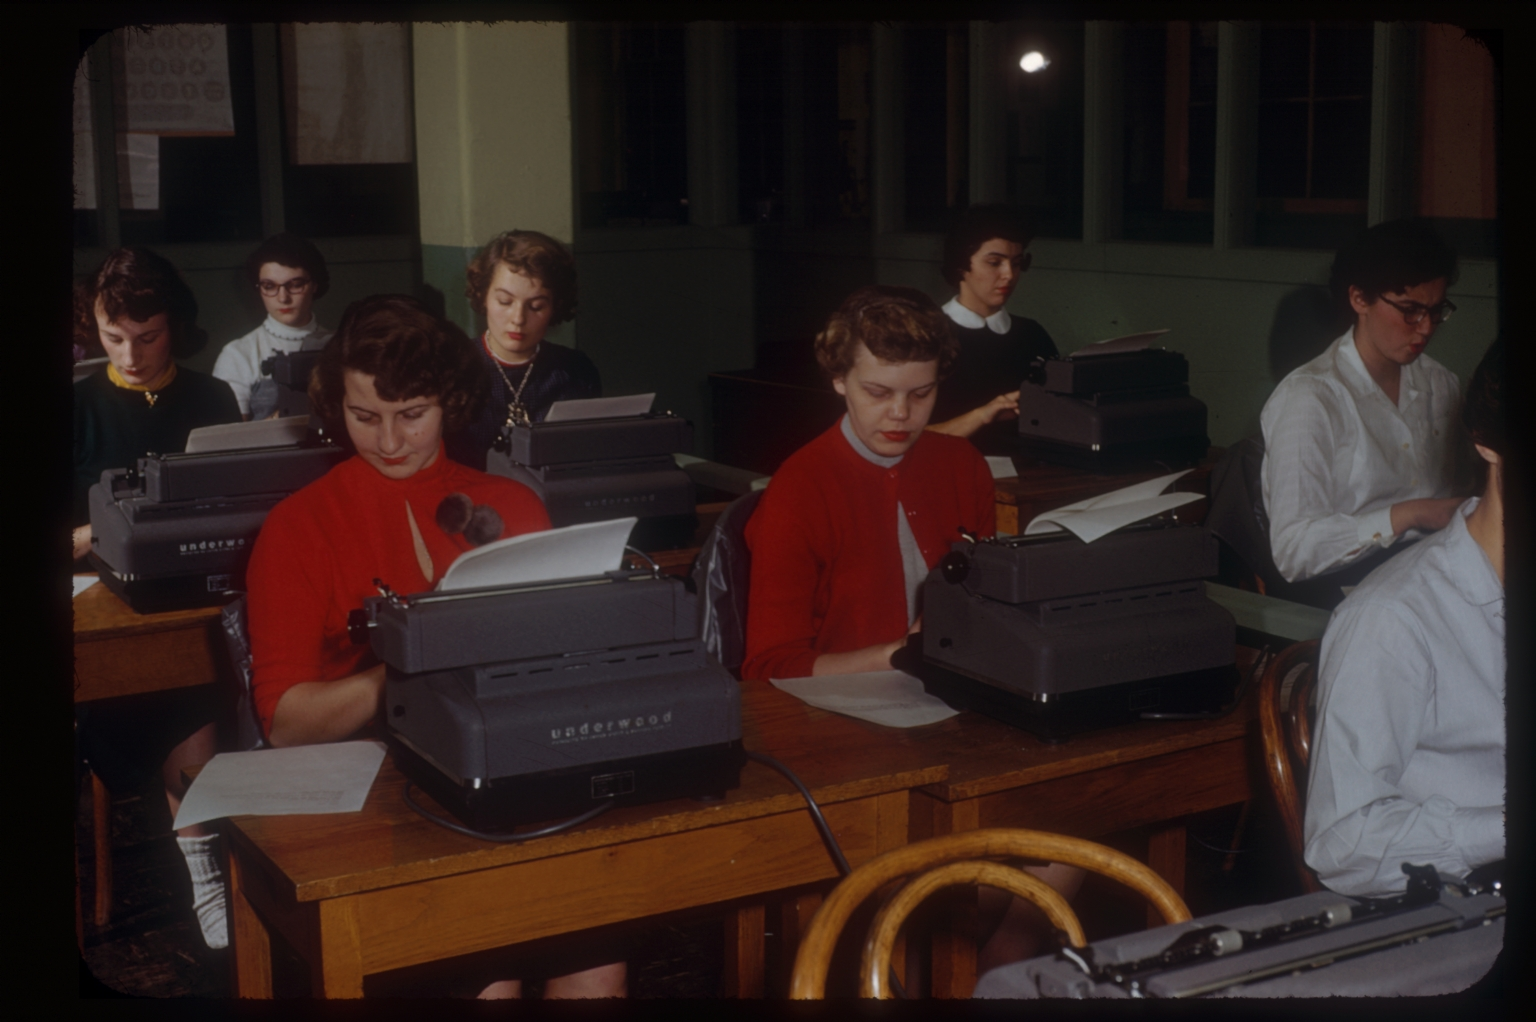 Business students at typewriters, Rochester Institute of Technology